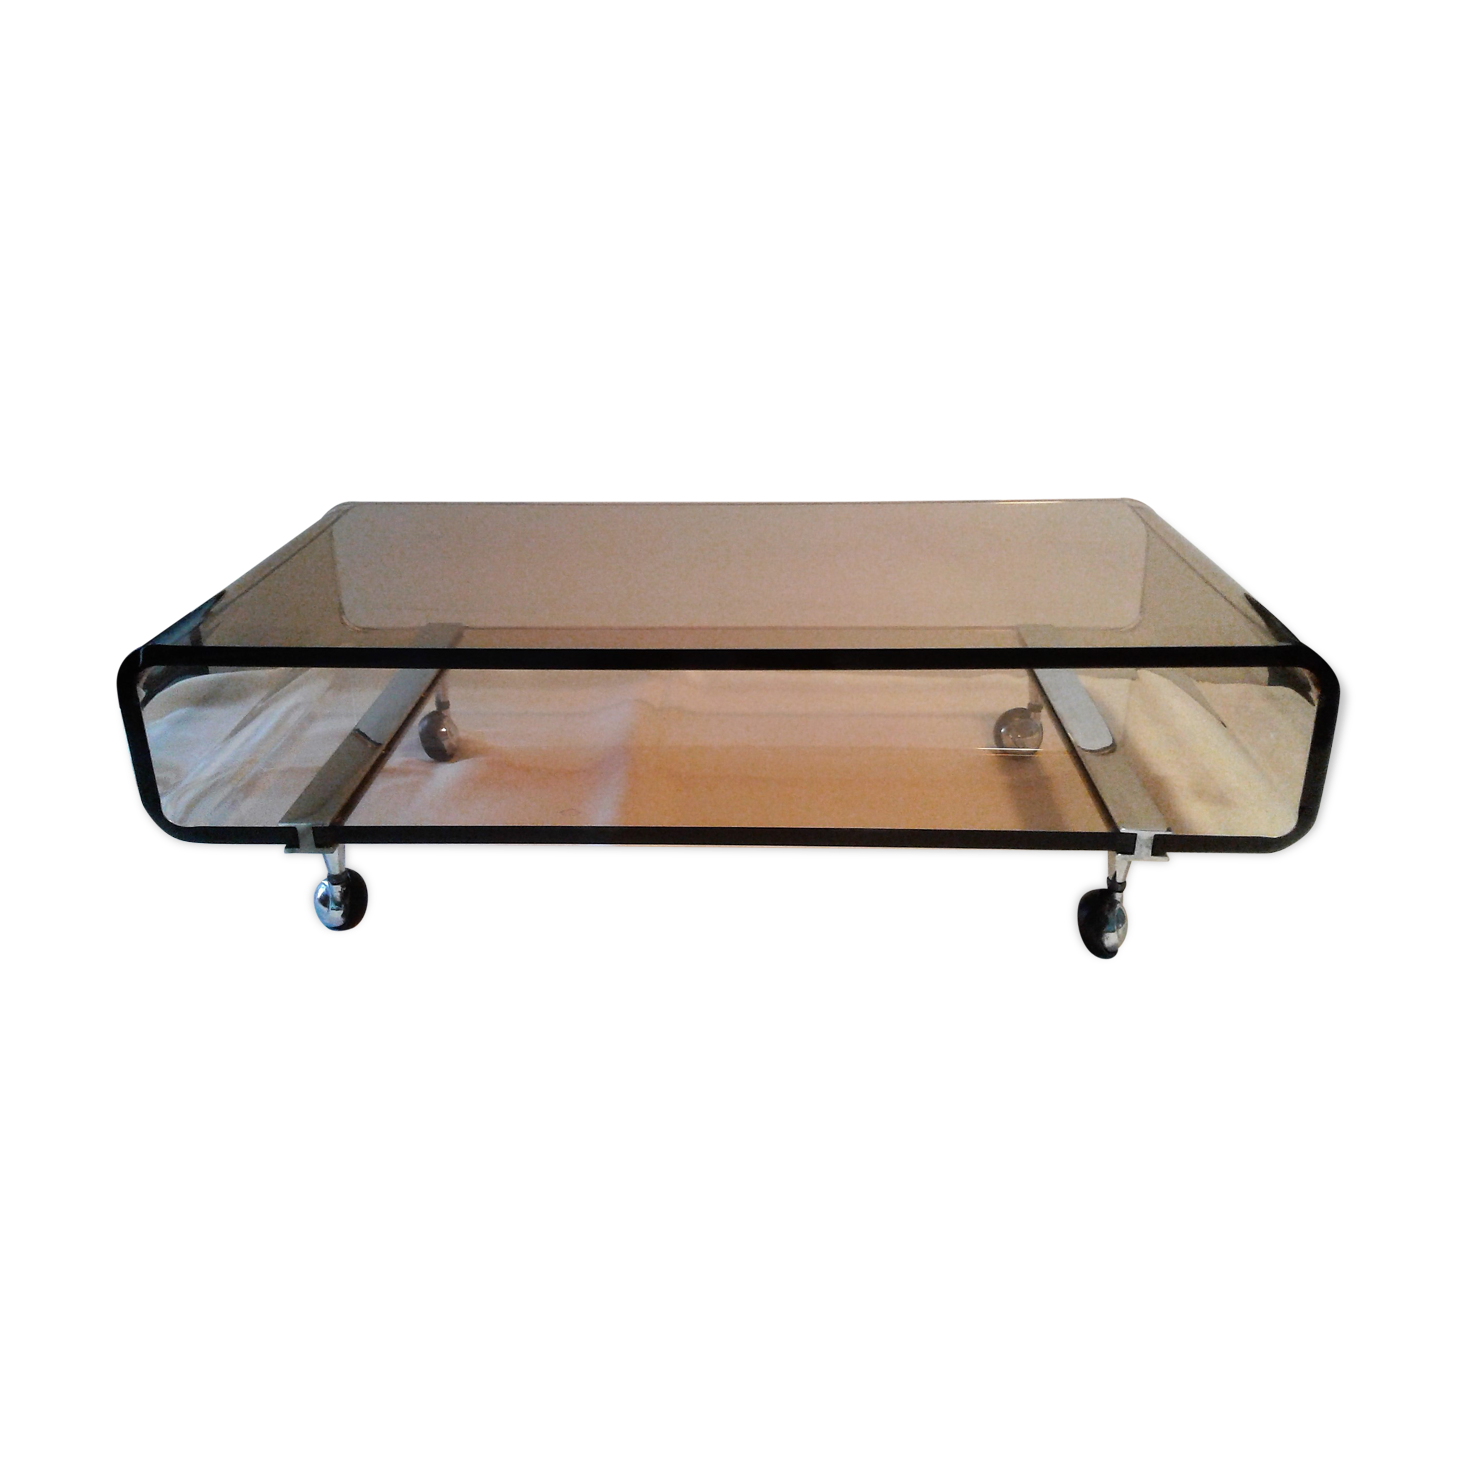 Gallery of table basse en altuglas fum us with table basse plexiglas transparent - Tabouret de bar plexiglas transparent ...